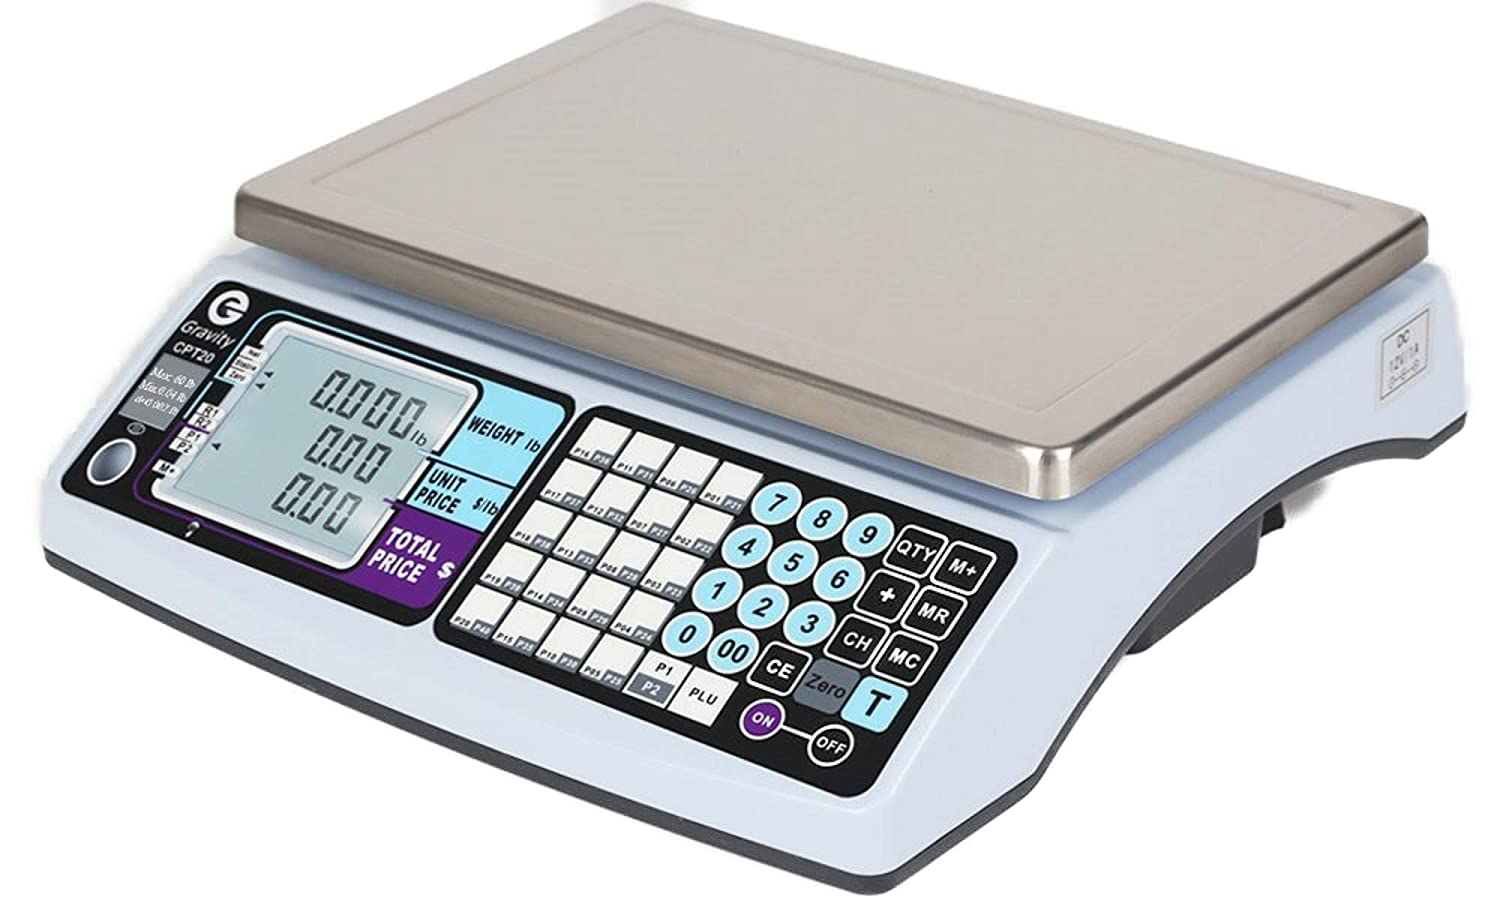 NTEP Legal for Trade Price Computing Scale, 3lb / 6lb Capacity, 0.001lb / 0.002lb Readability, Dual Range for Added Accuracy